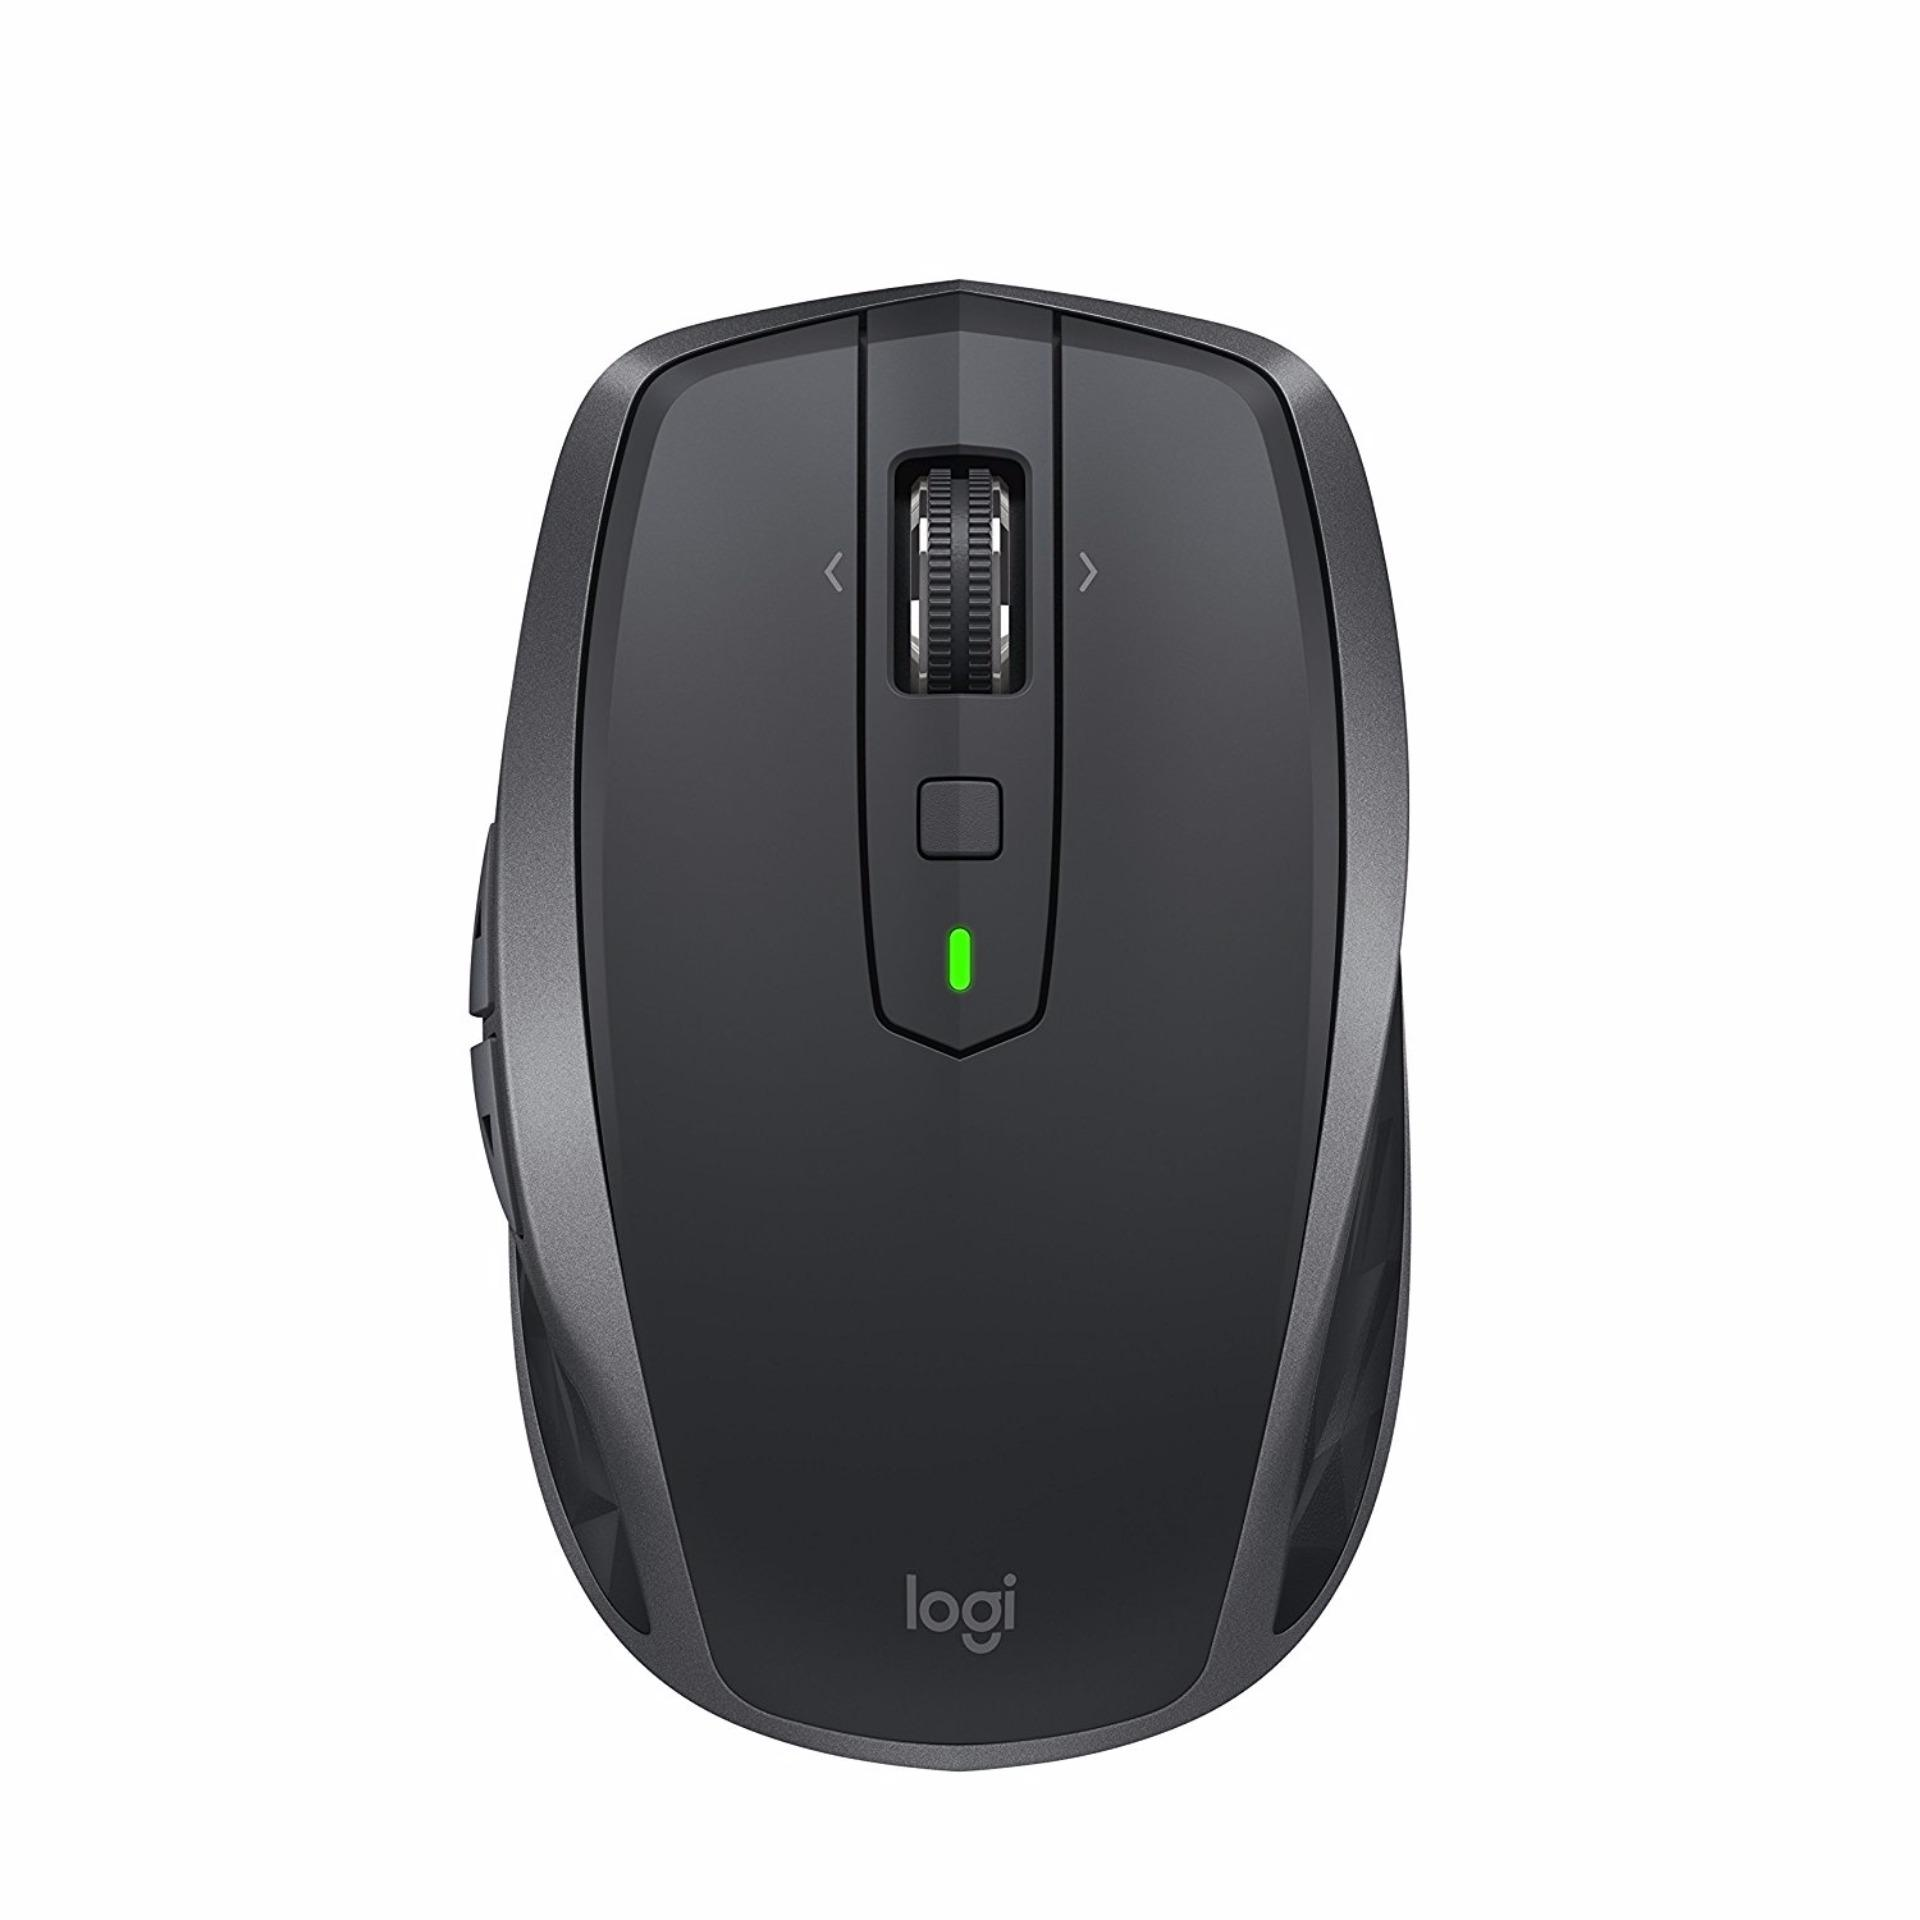 M185 Wireless Mouse Logitech My Stuff T Mice Wireles M331 M 331 Silent Plus Replace M280 Mx Anywhere 2s With Flow Cross Computer Control Singapore